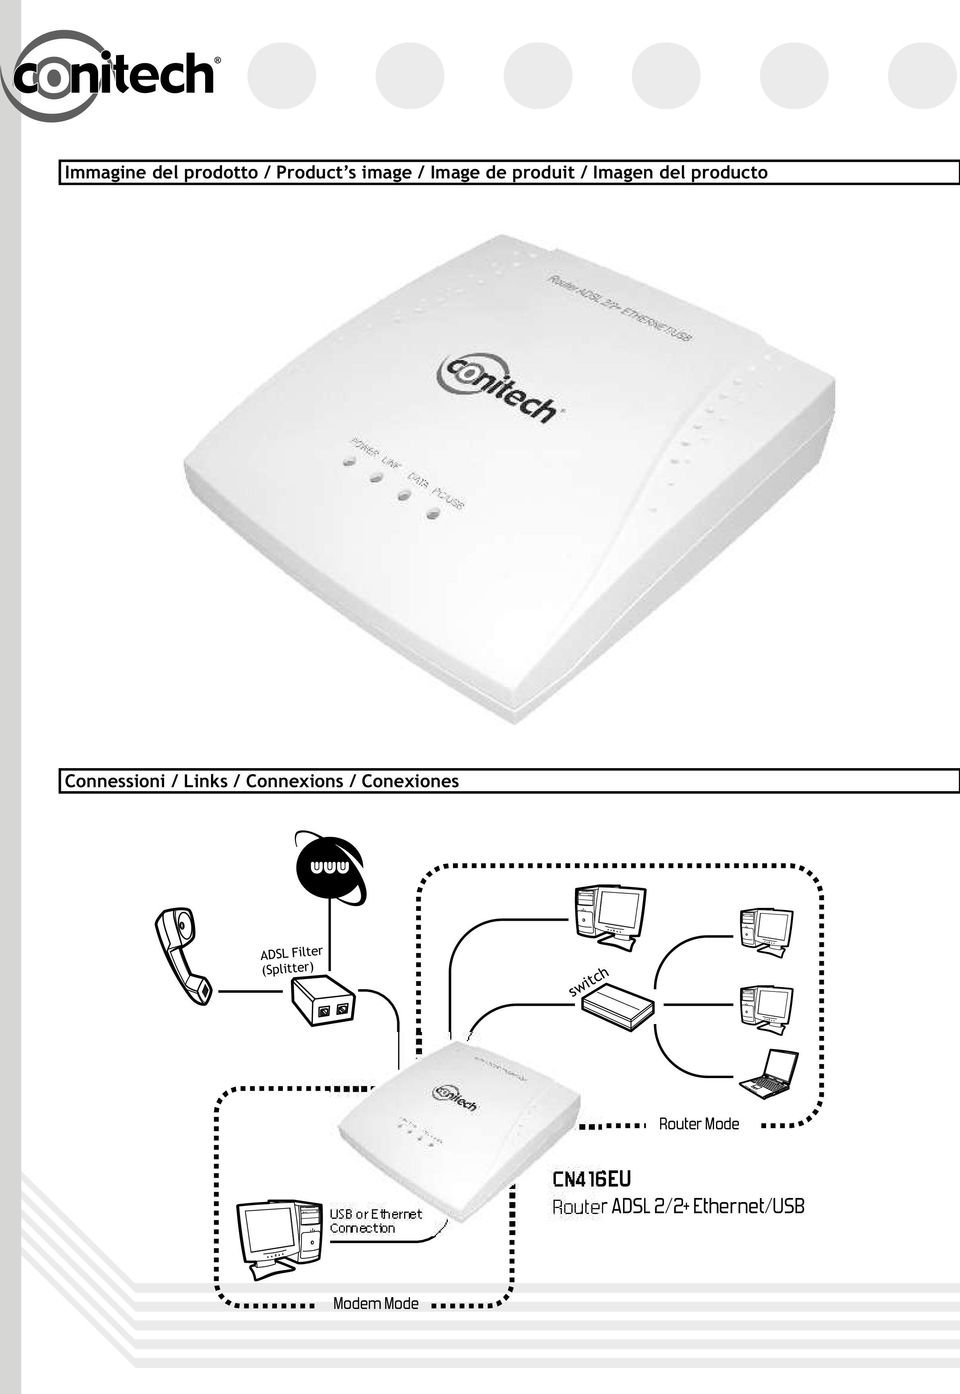 Conexiones ADSL Filter (Splitter) switch Router Mode USB or